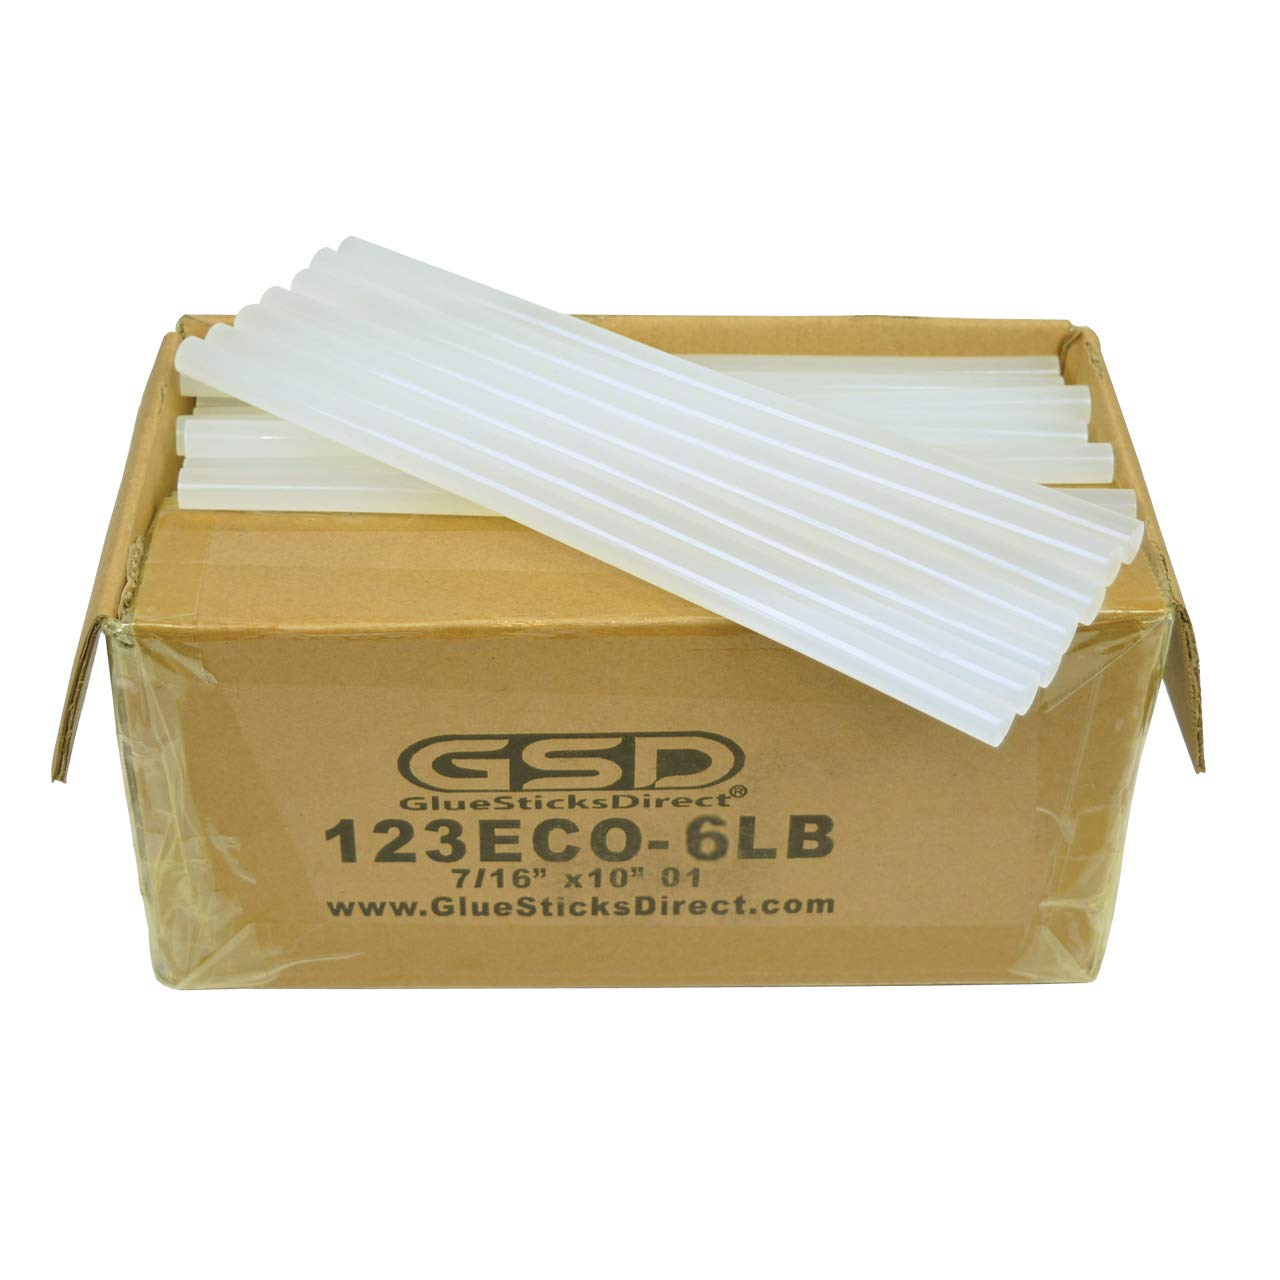 GlueSticksDirect Economy Hot Melt Glue Sticks 7/16'' X 10'' 110 Sticks 6 lbs bulk